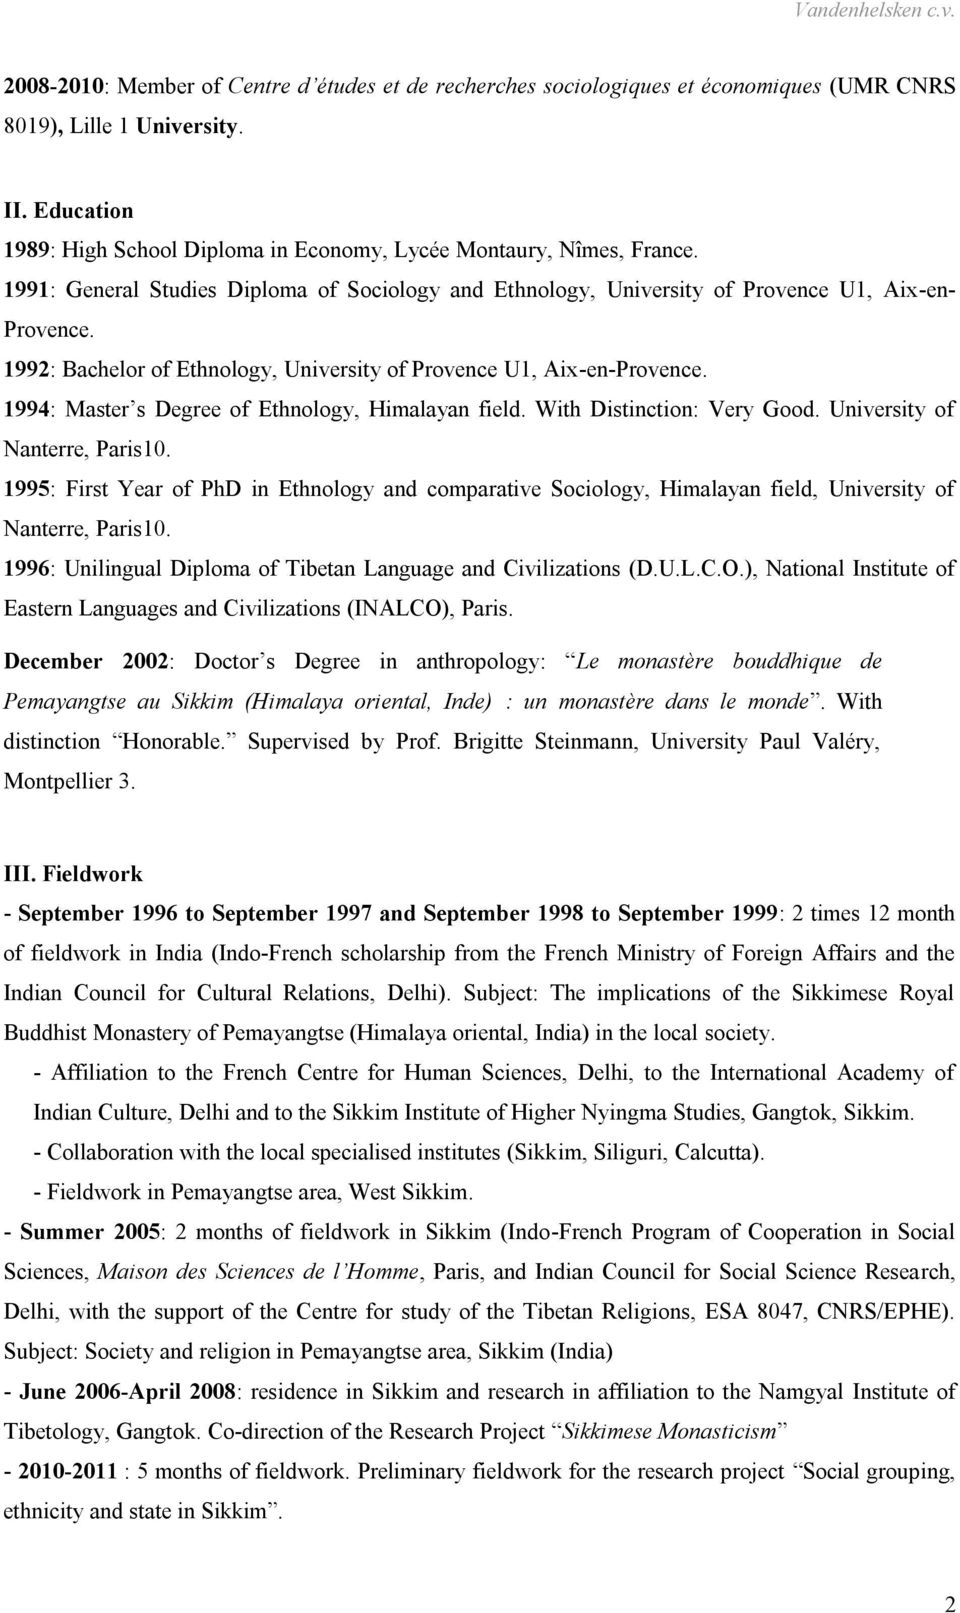 1992: Bachelor of Ethnology, University of Provence U1, Aix-en-Provence. 1994: Master s Degree of Ethnology, Himalayan field. With Distinction: Very Good. University of Nanterre, Paris10.